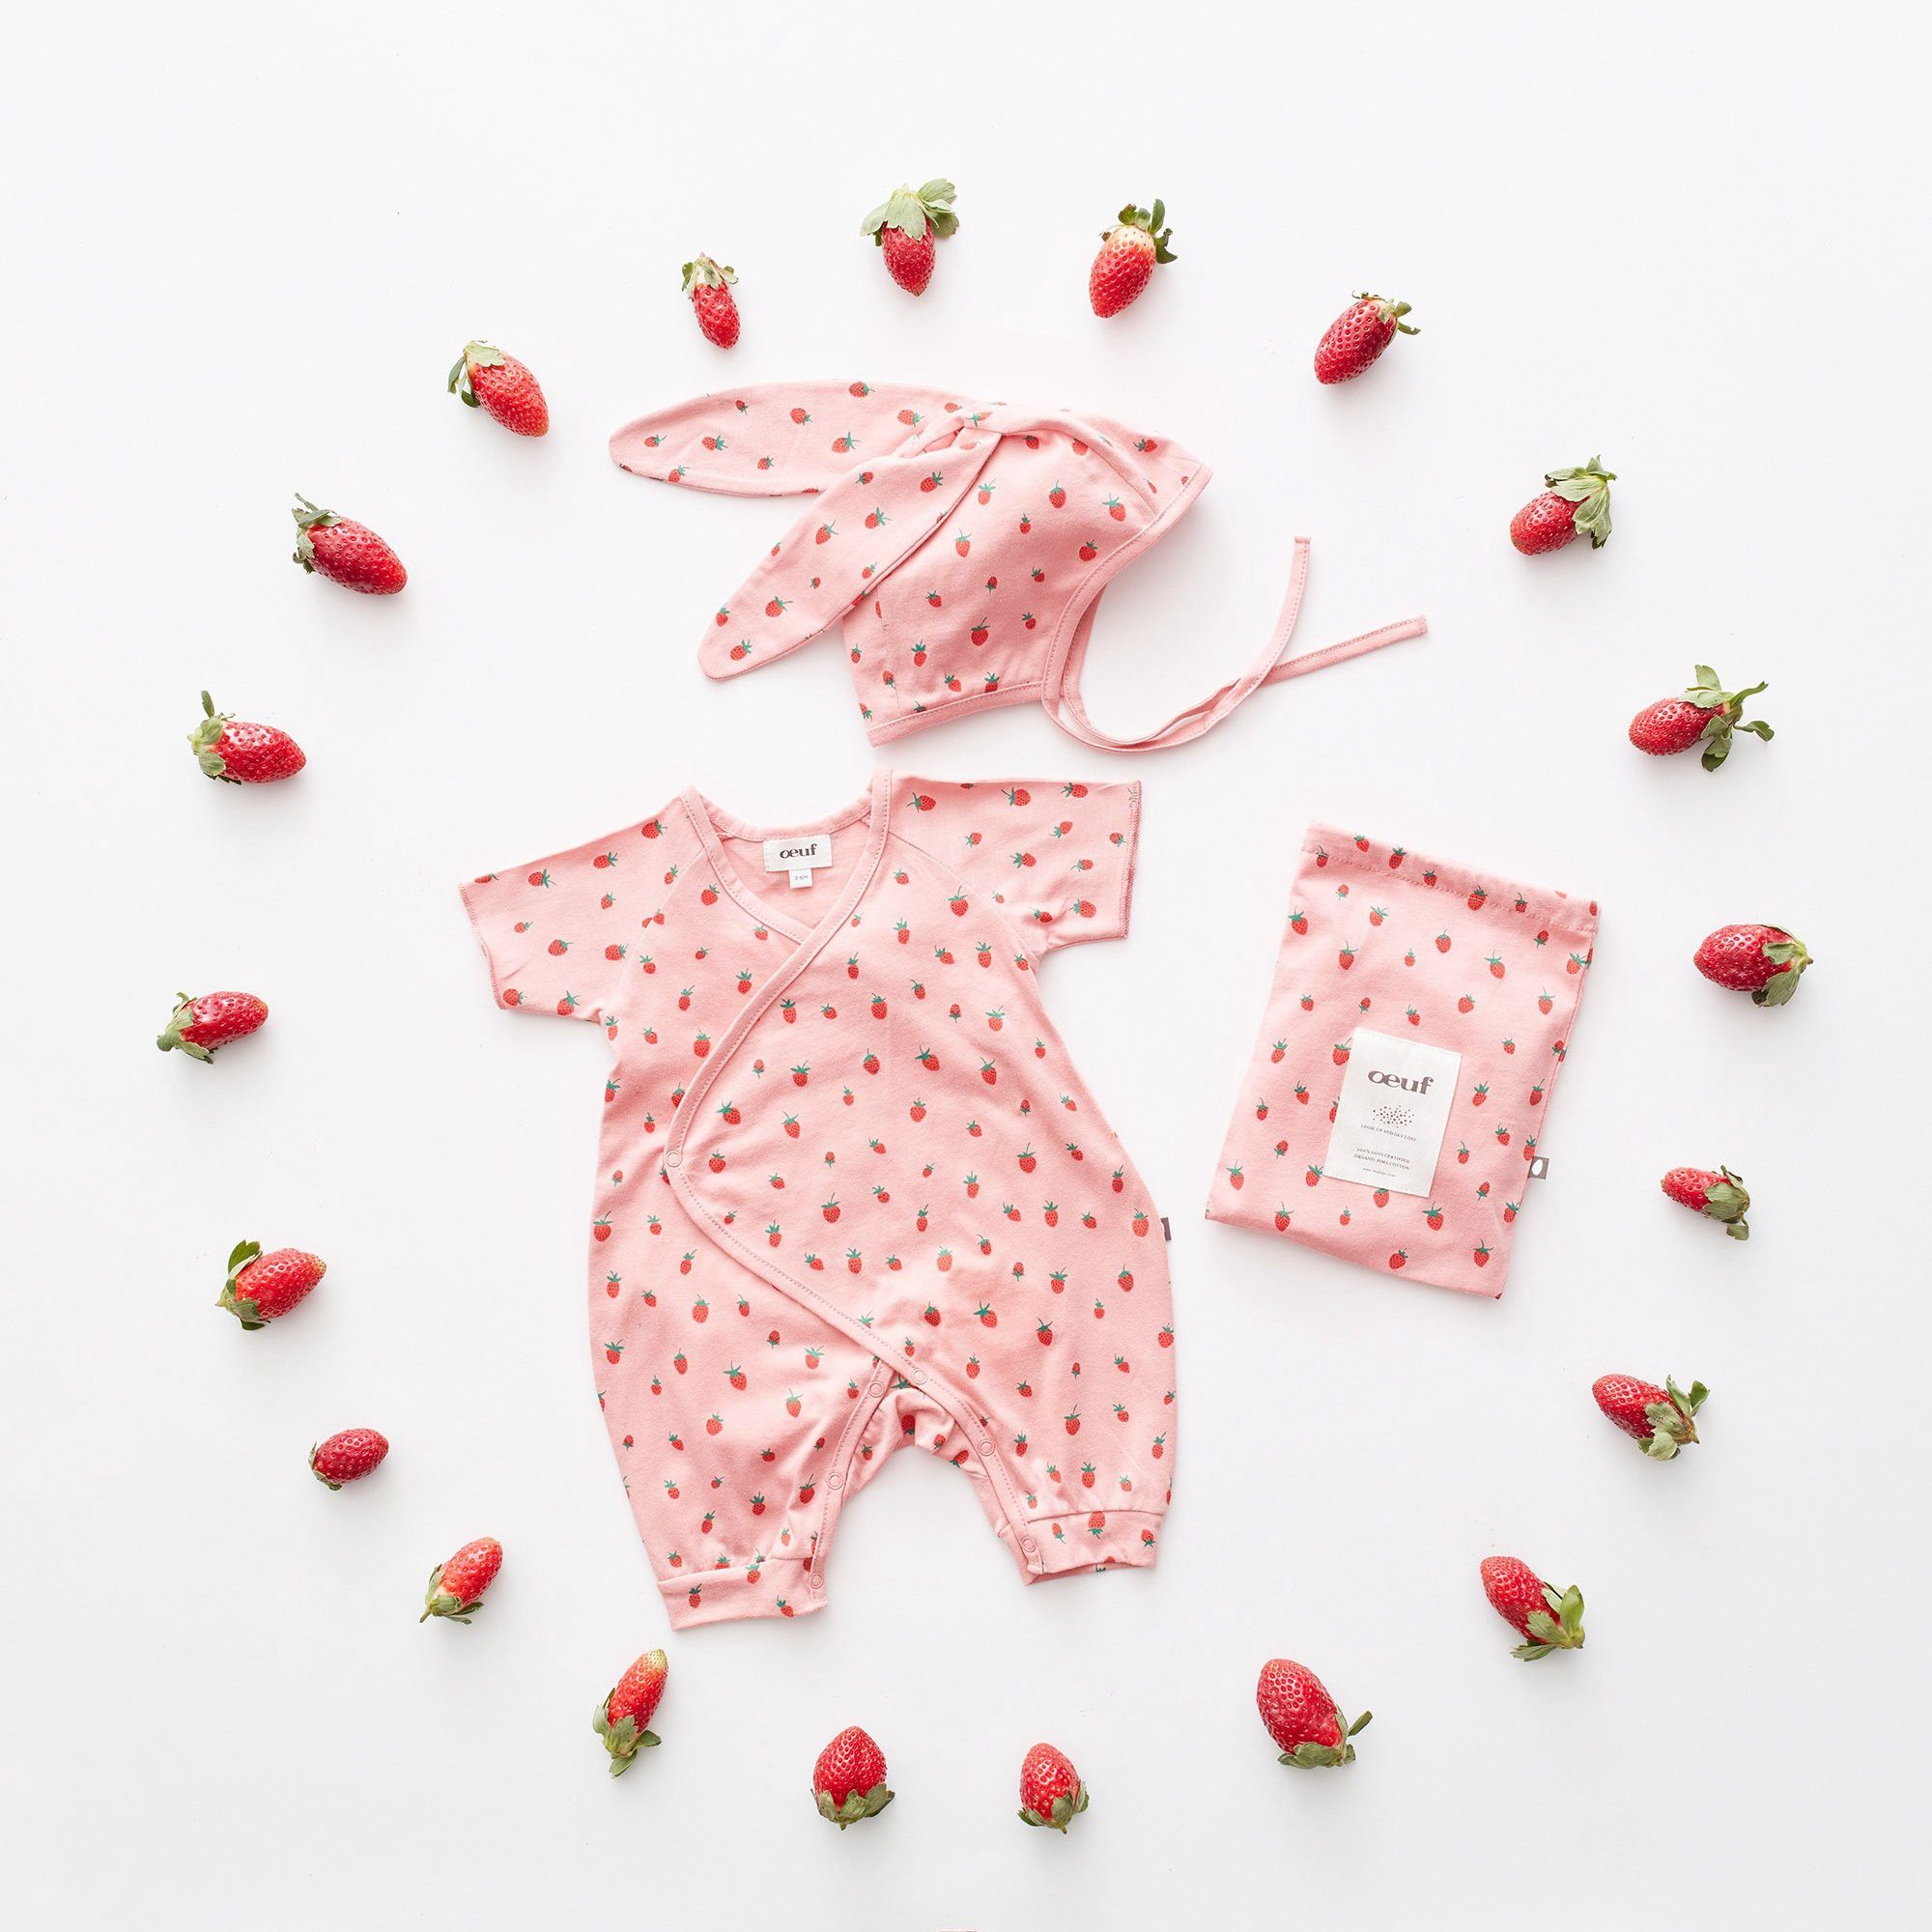 f14aa6c05 Oeuf Bunny Set-Rose/Strawberries - 0-3M   Products   Bunny hat, Baby ...